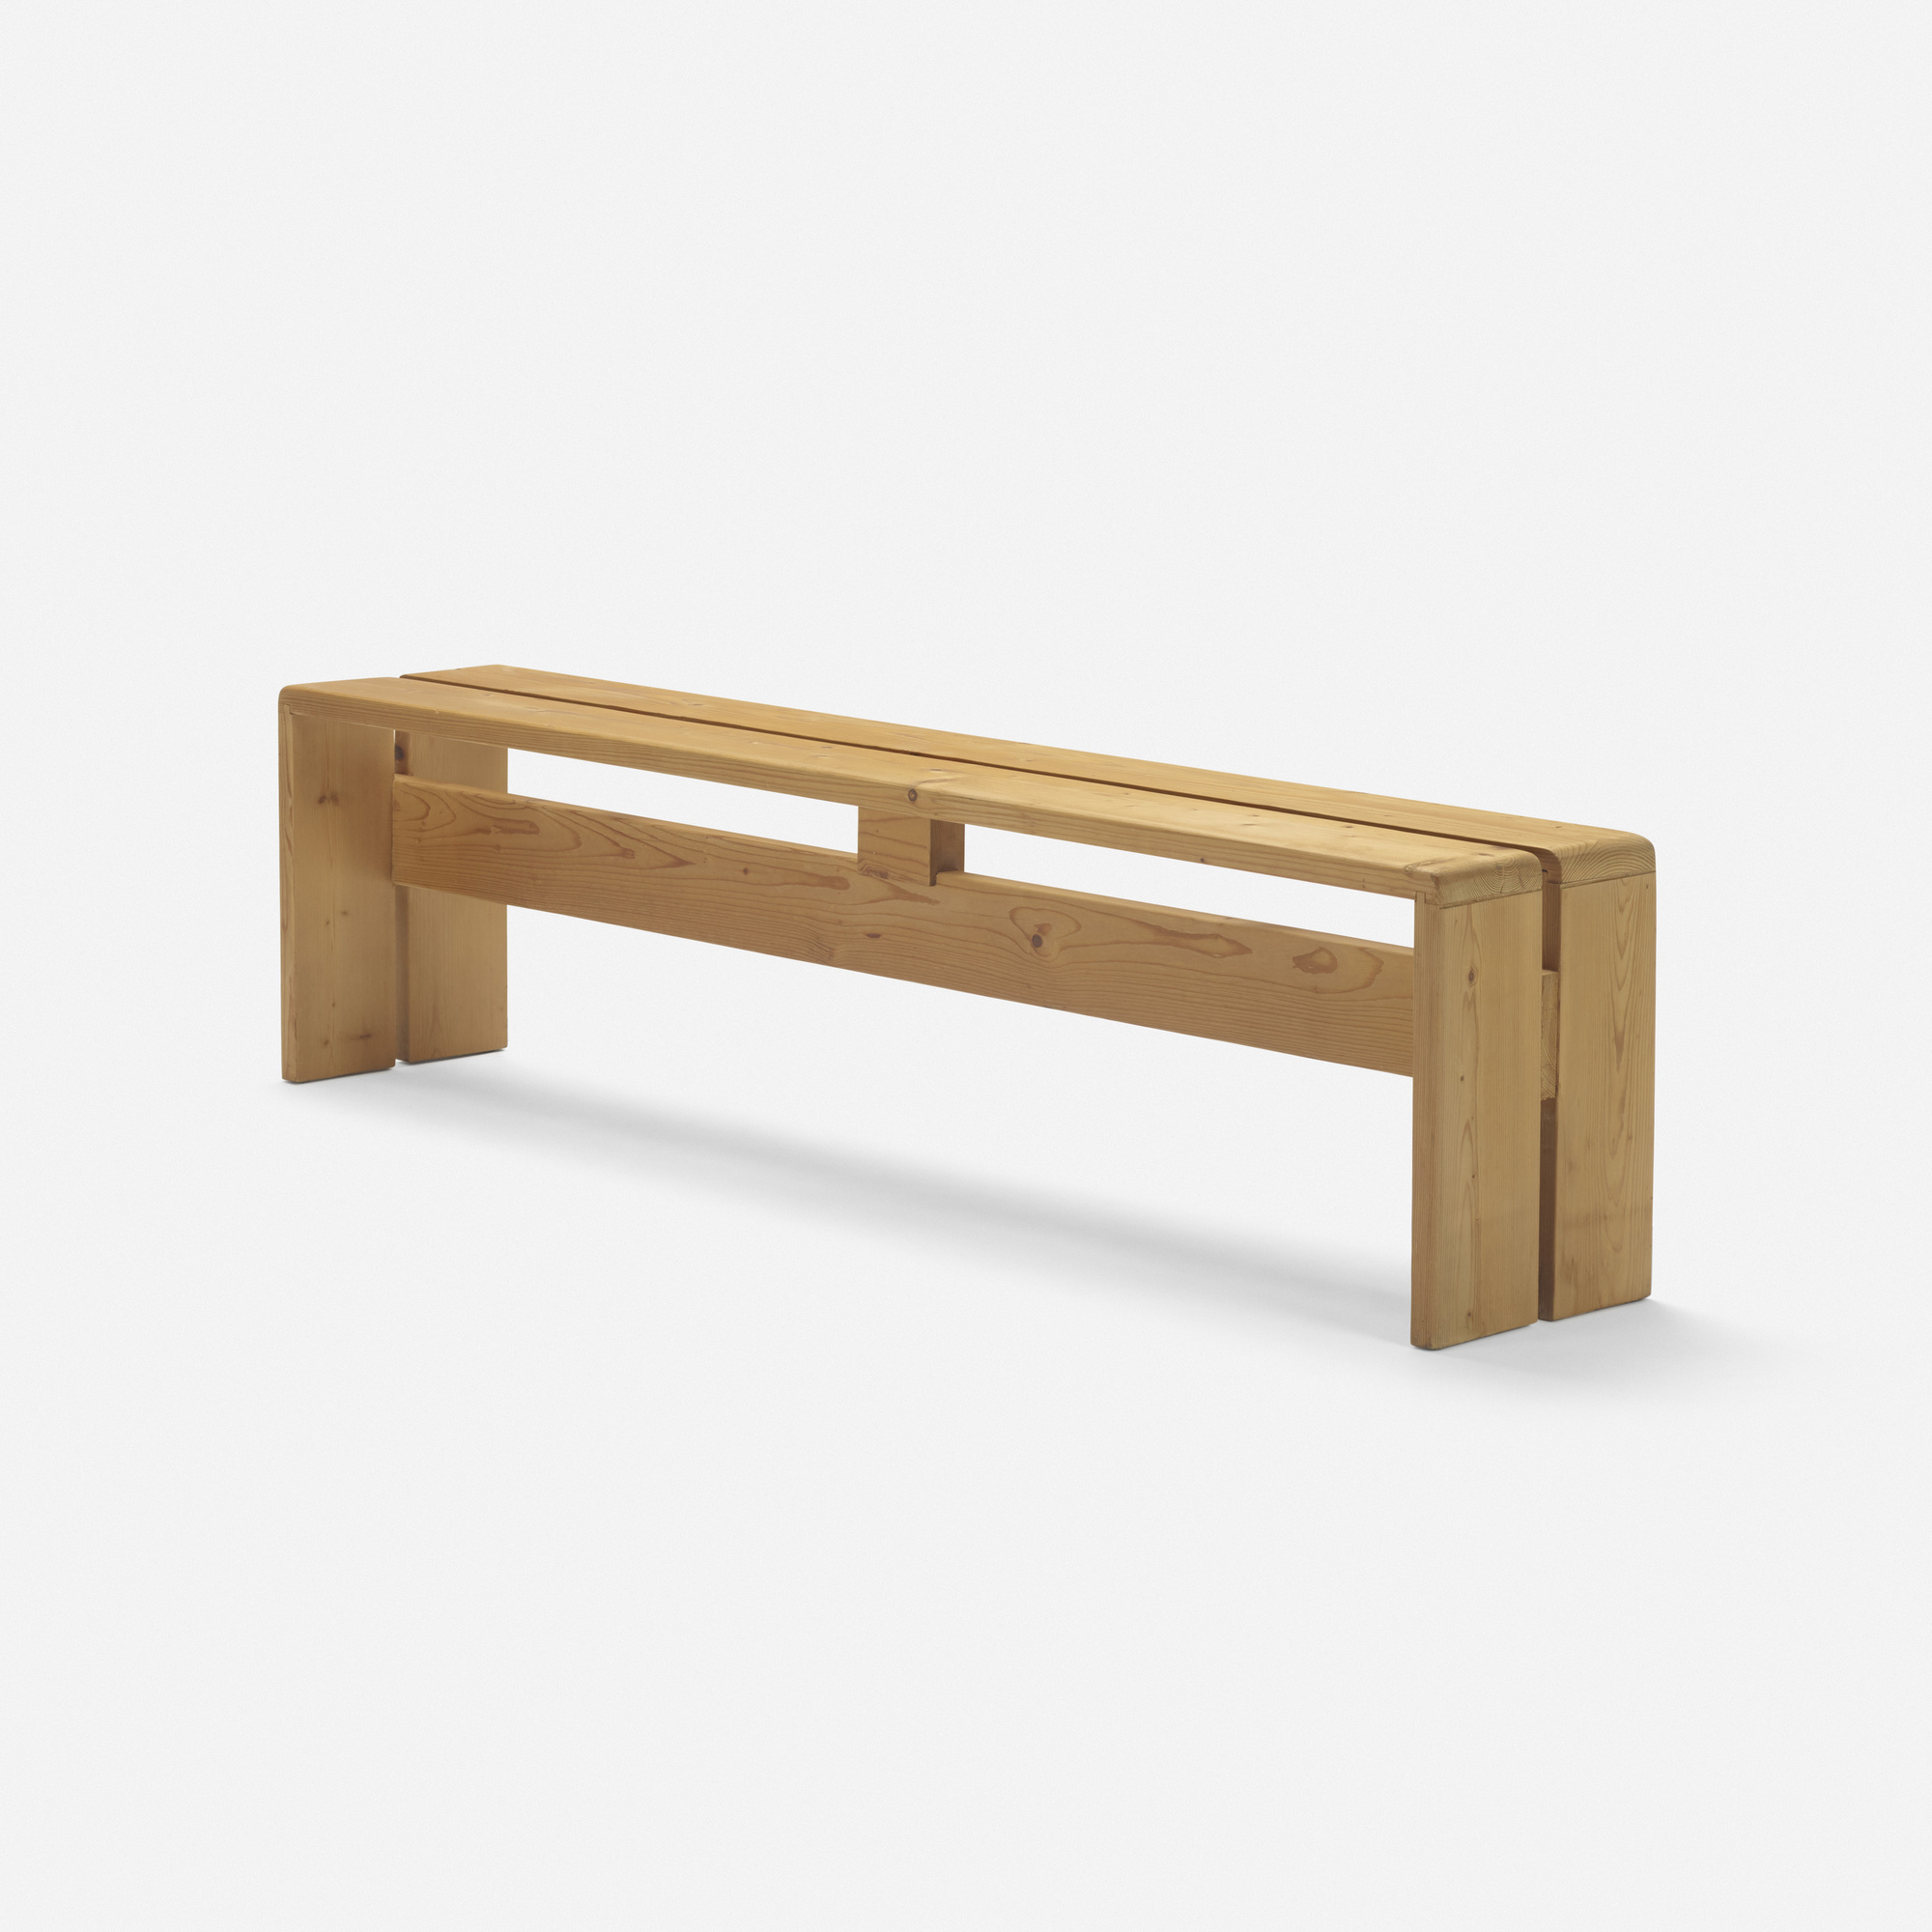 161: Charlotte Perriand / bench from Les Arcs, Savoie (1 of 2)